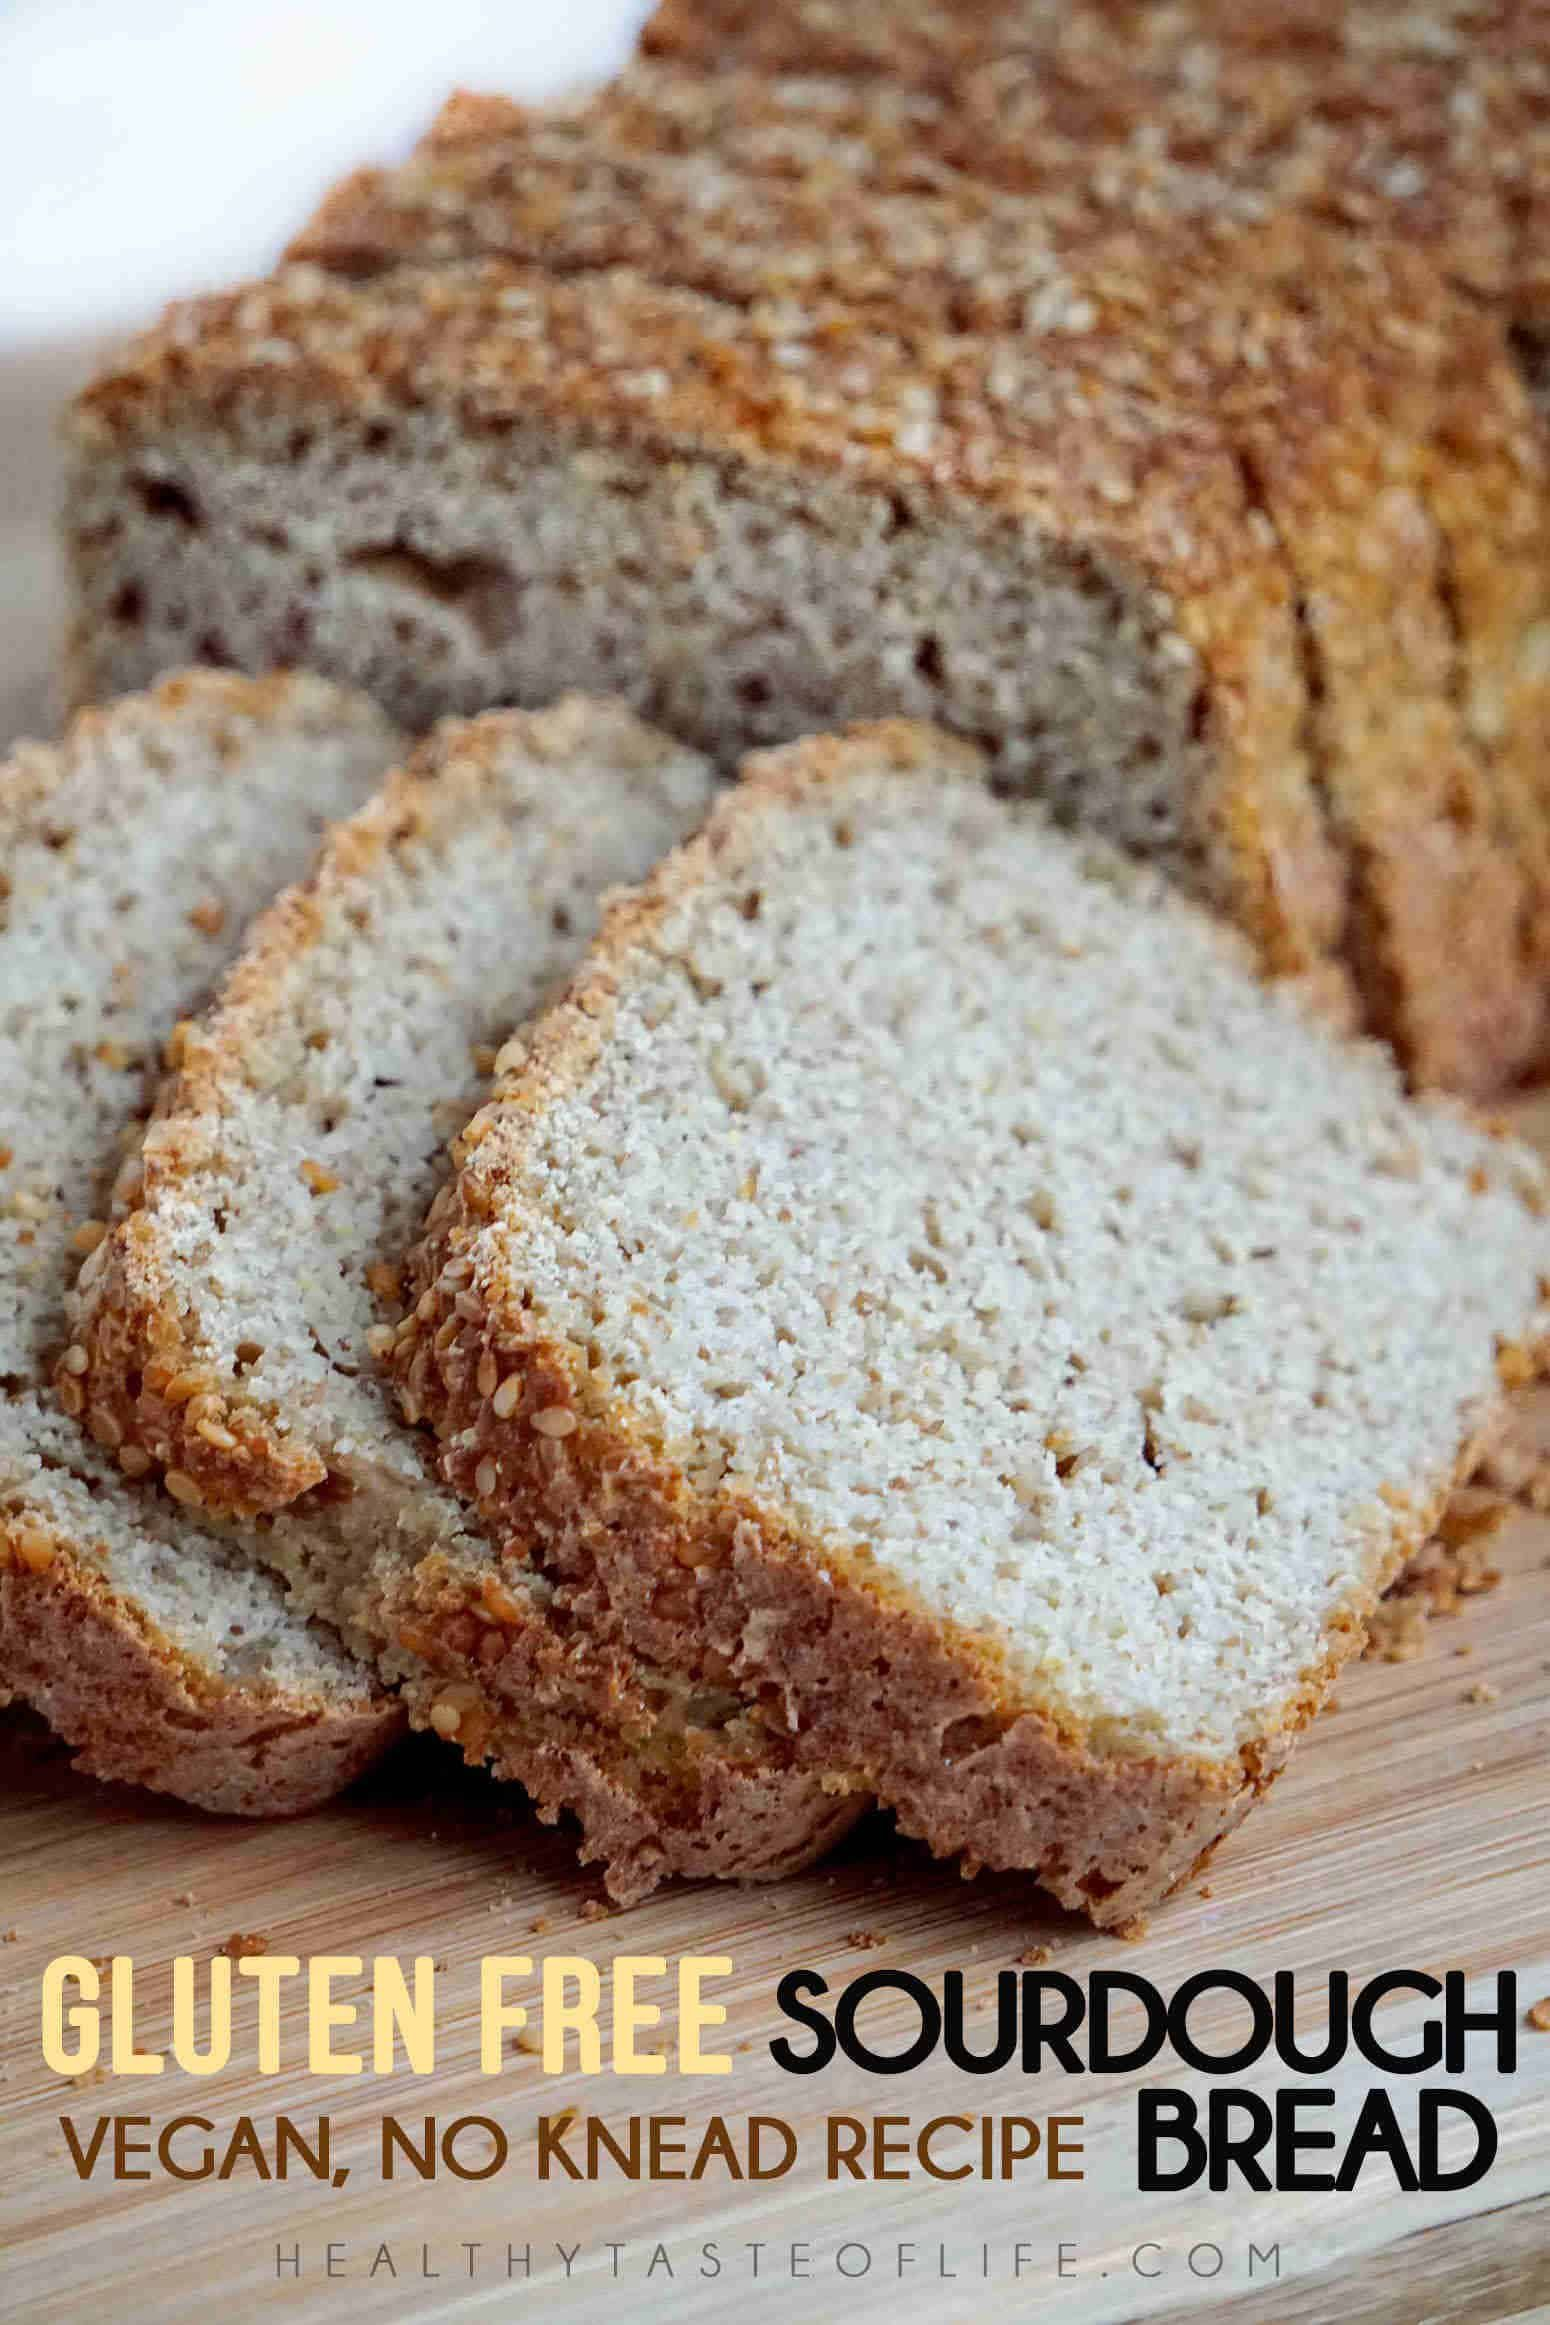 This Gluten Free Bread Has The Right Texture There Is No Xanthan Gum No Yeast And No Empty Starches Vegan A Healthy Gluten Free Bread In 2020 Gluten Free Sourdough